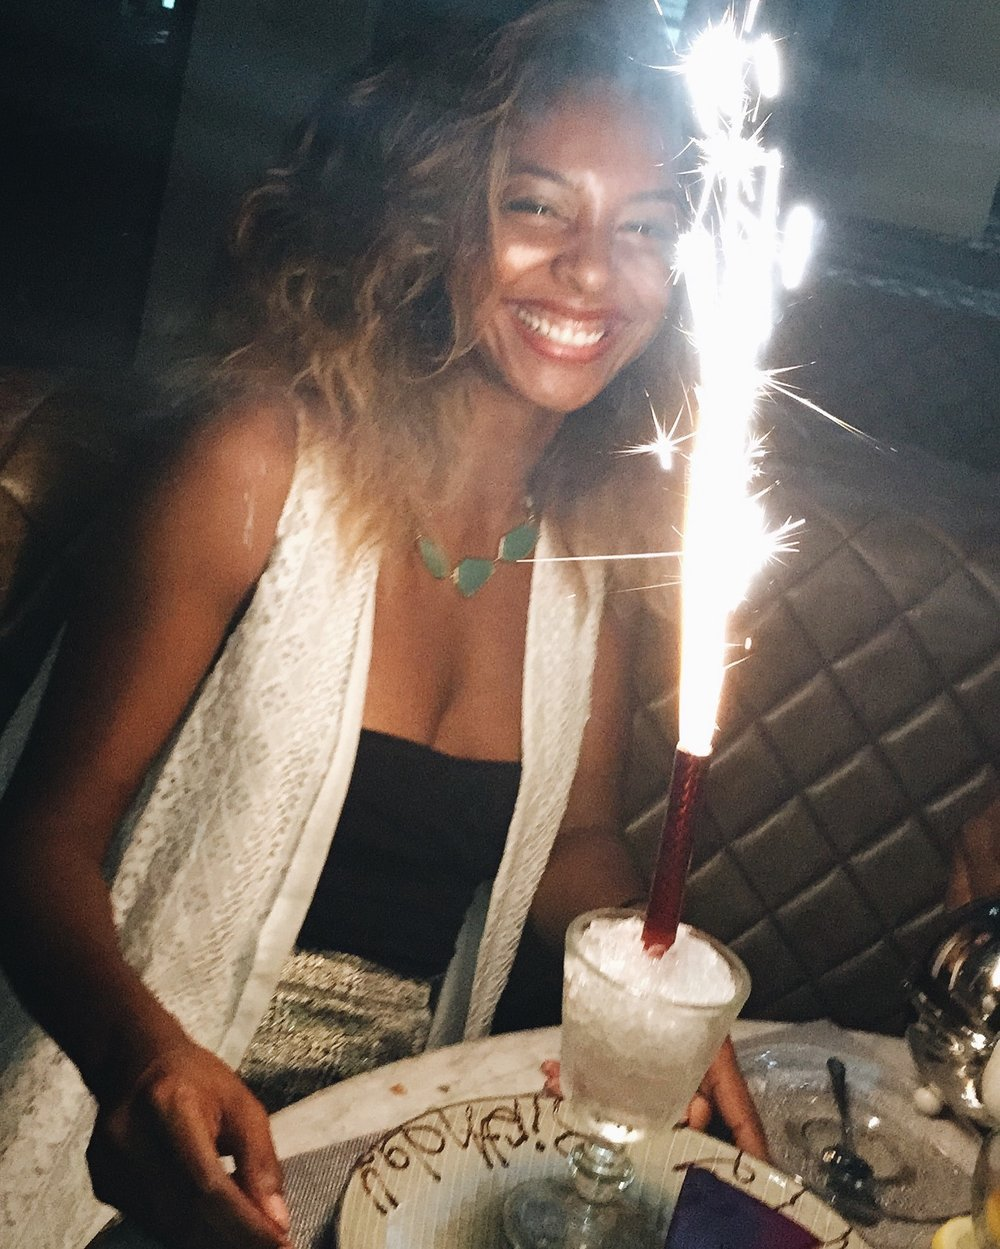 Me celebrating my 26th birthday in Accra, Ghana. I wanted to study abroad in Ghana during college, but was advised against it because of my peanut allergy. I'm glad I didn't let my allergy hold me back from experiencing such a beautiful country.